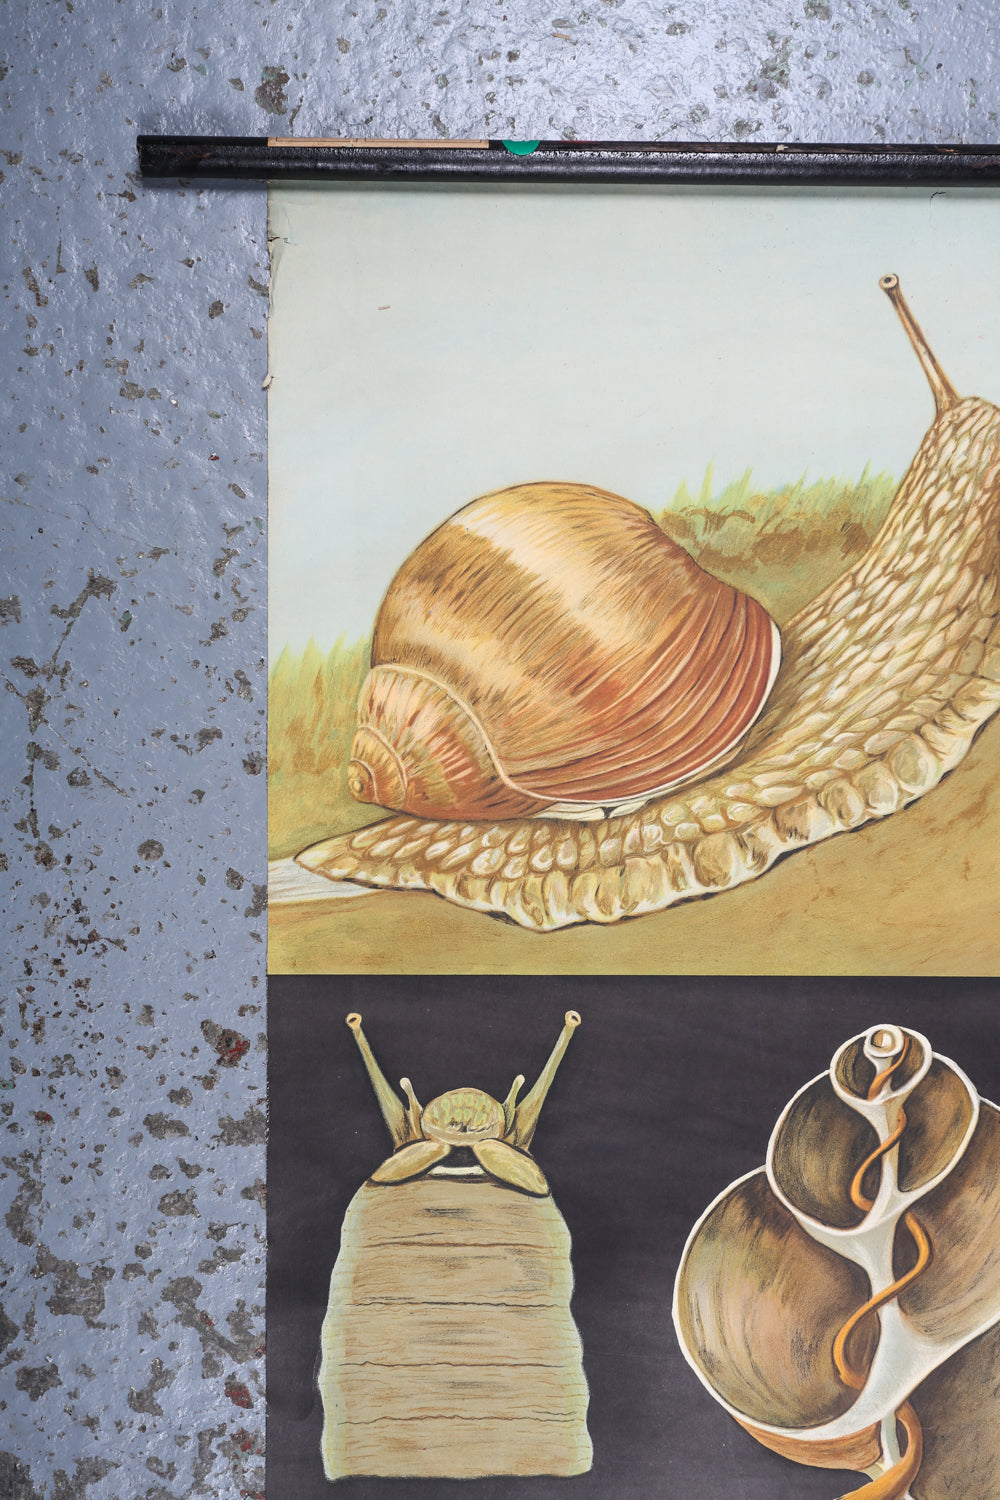 German Educational Wall Chart of a Snail